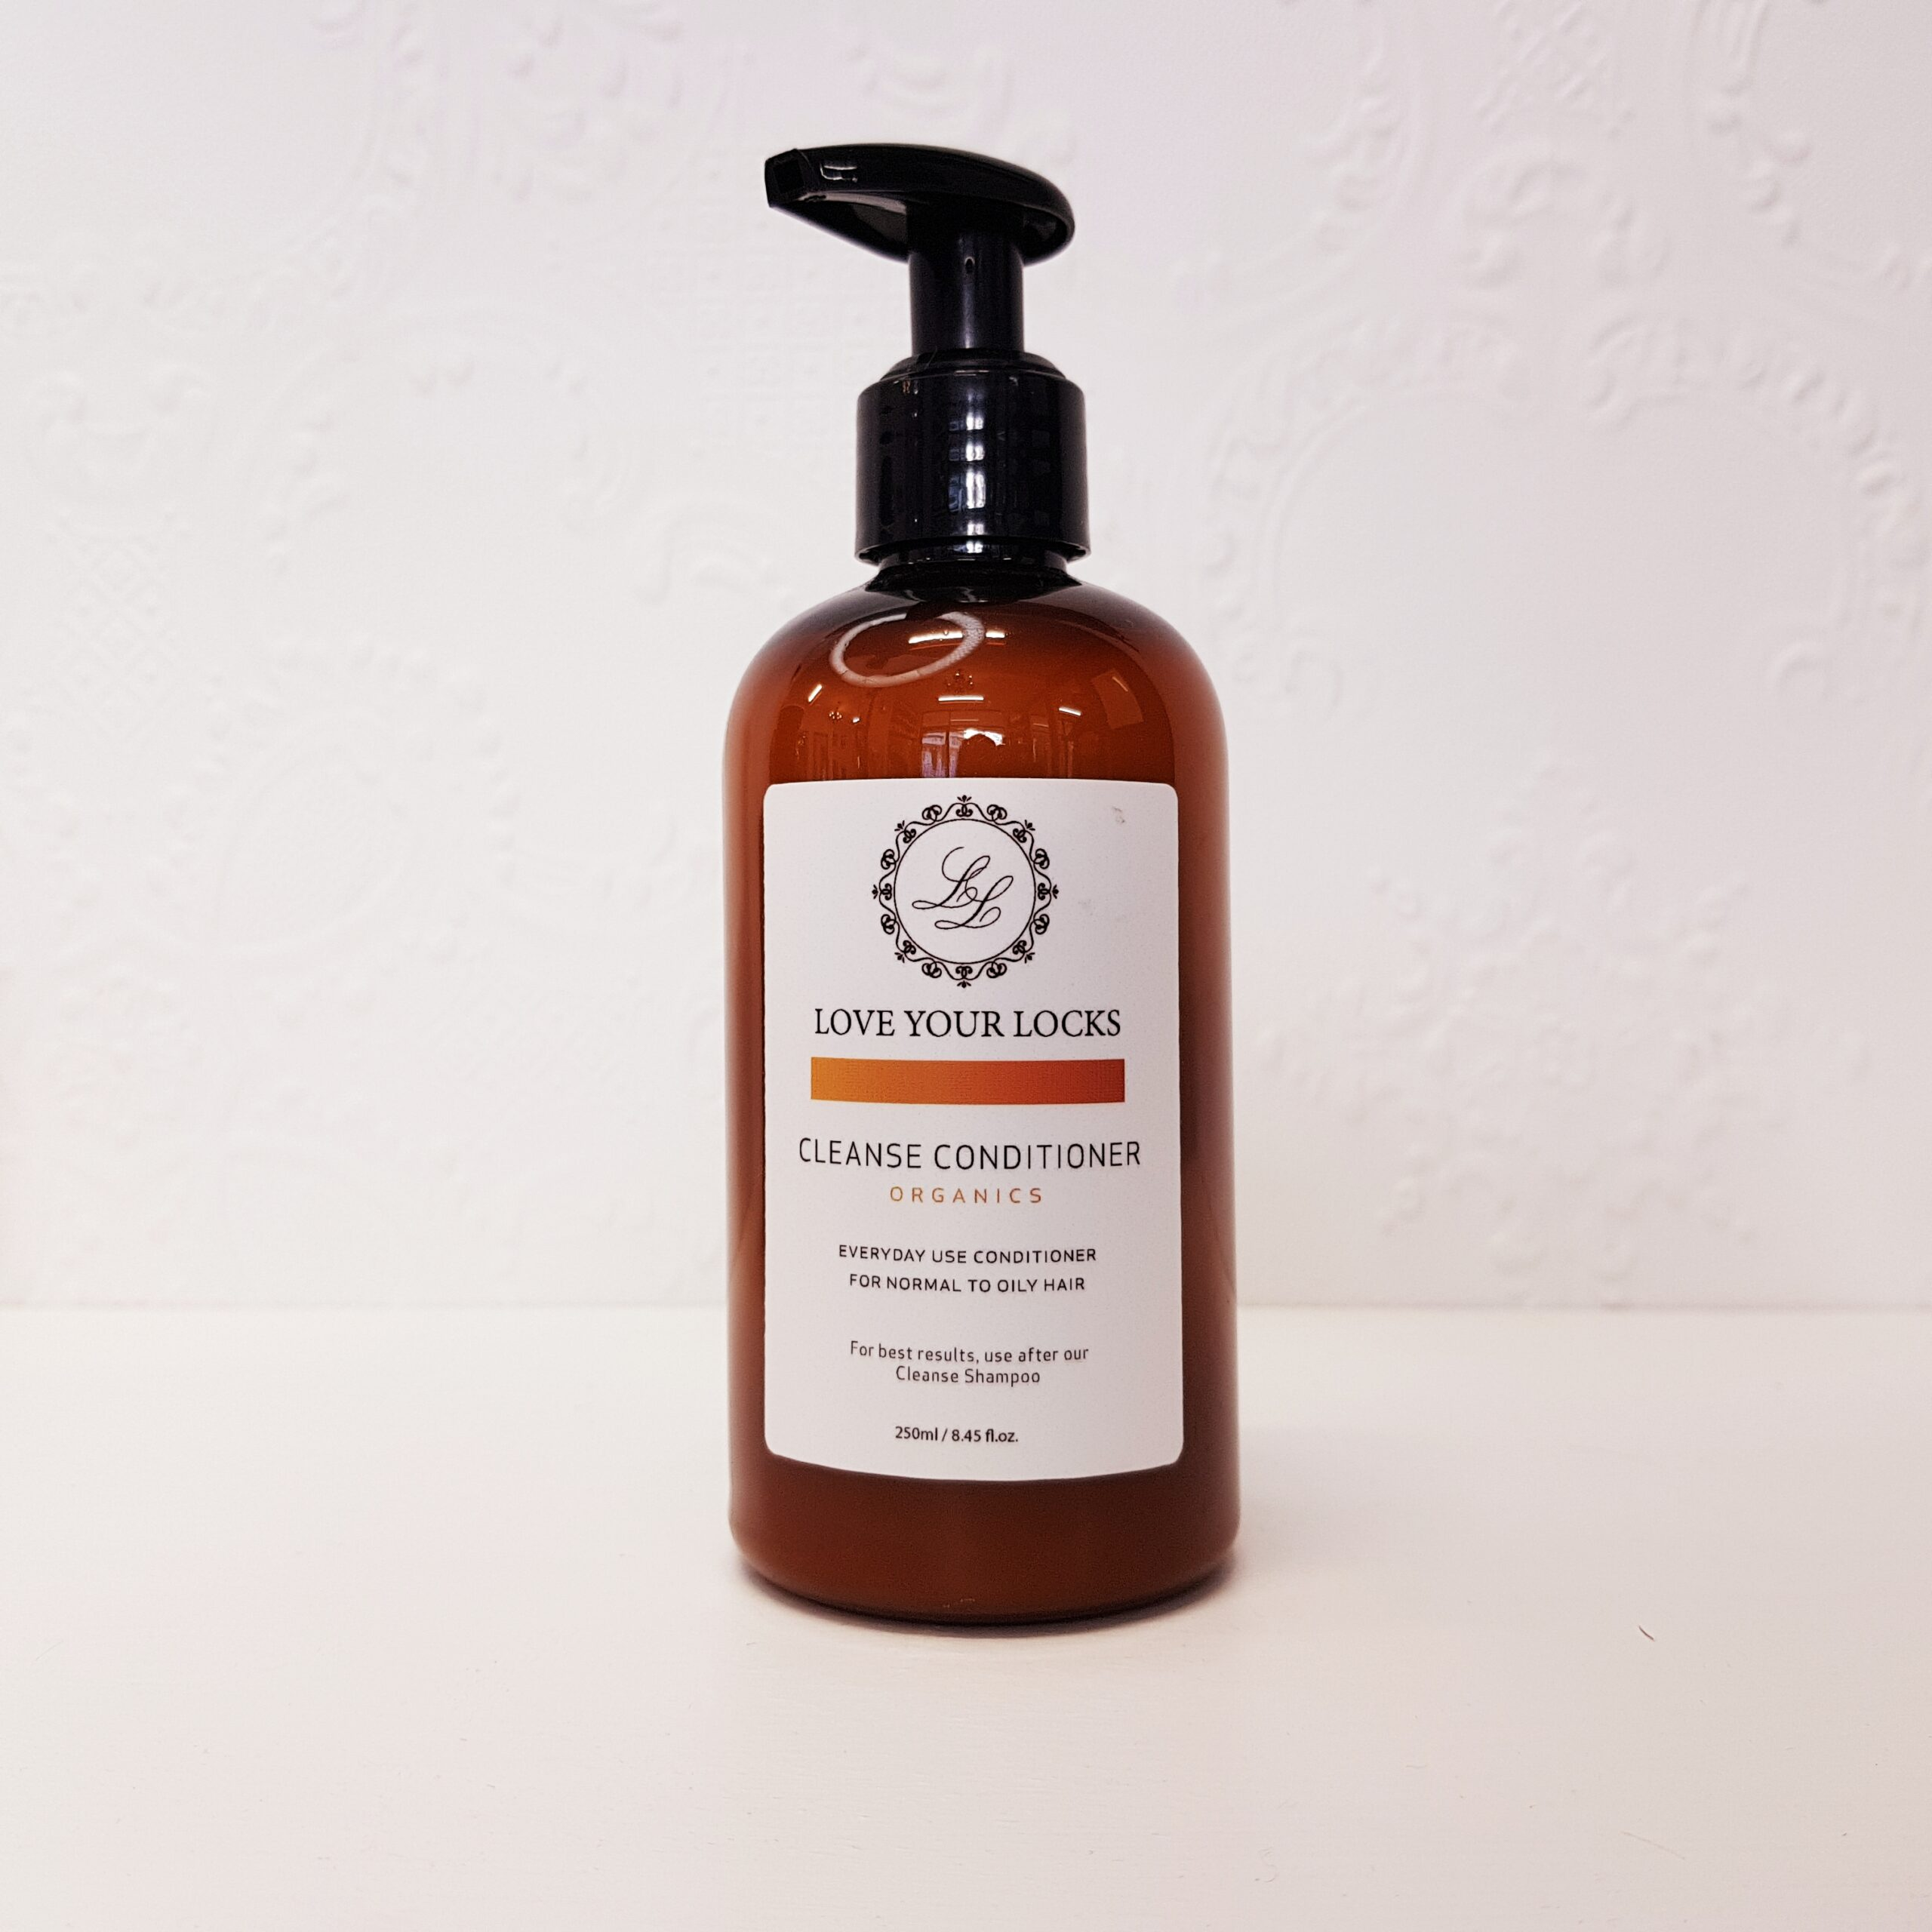 Cleanse Conditioner 2